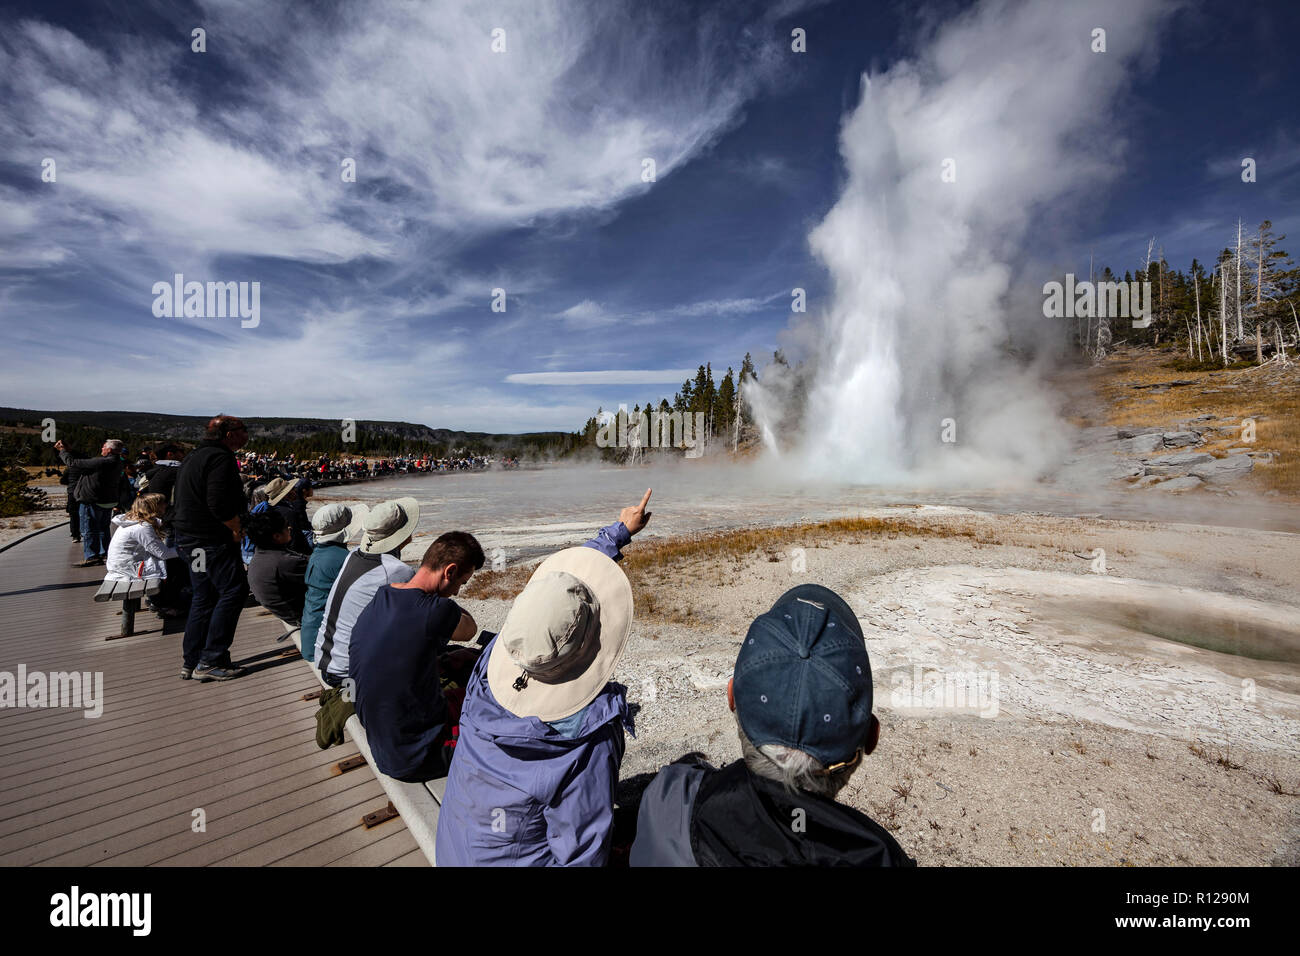 WY03598-00...WYOMING - Grand Geyser in the Old Faithful area of Yellowstone National Park. - Stock Image